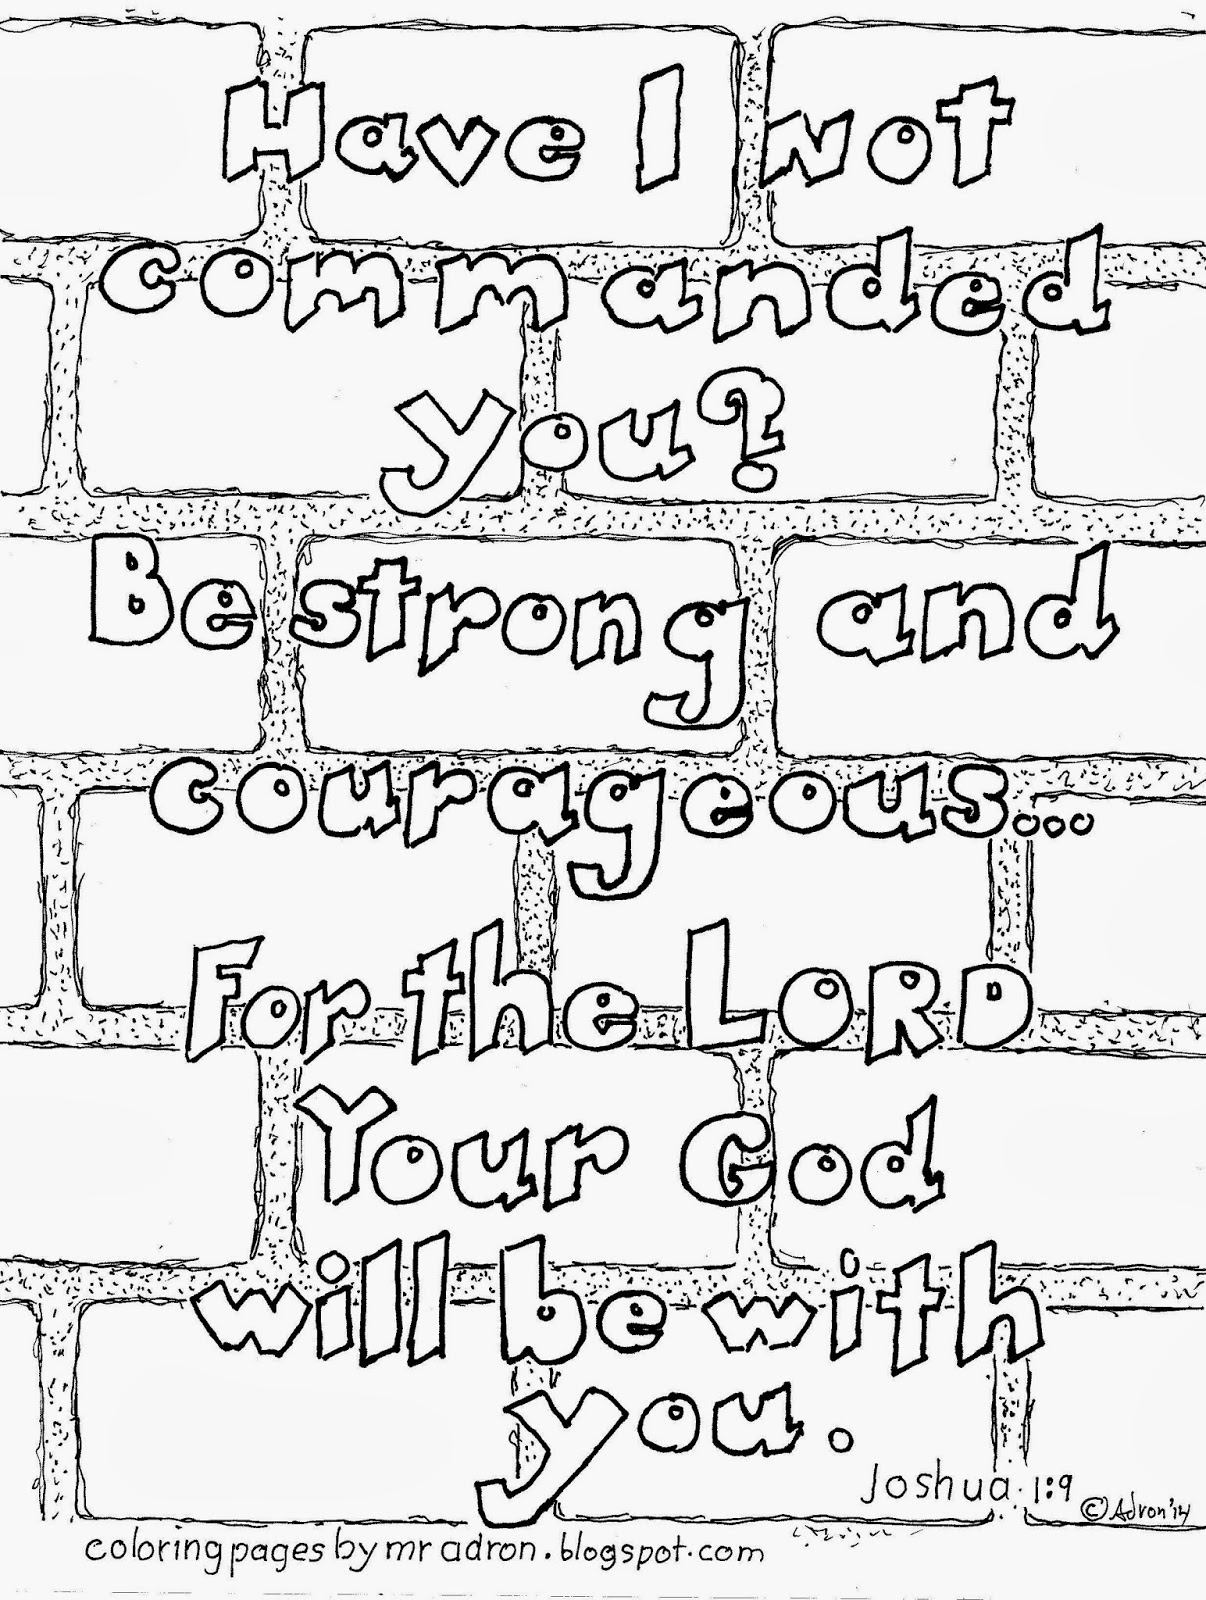 Coloring pages for john 9 - Joshua 1 9 Be Strong And Courageous Coloring Page